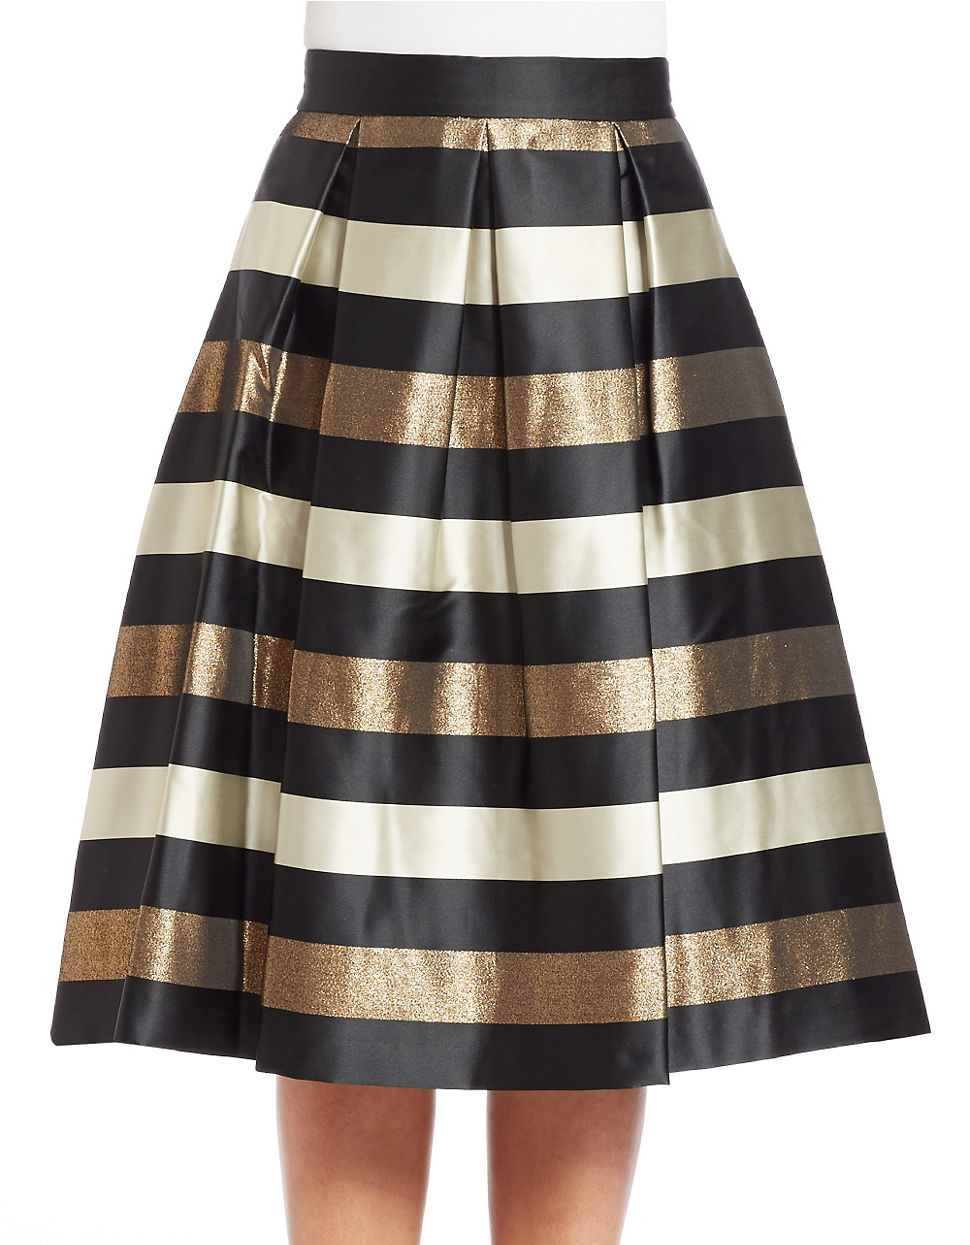 Black And Gold Striped Skirt | Jill Dress